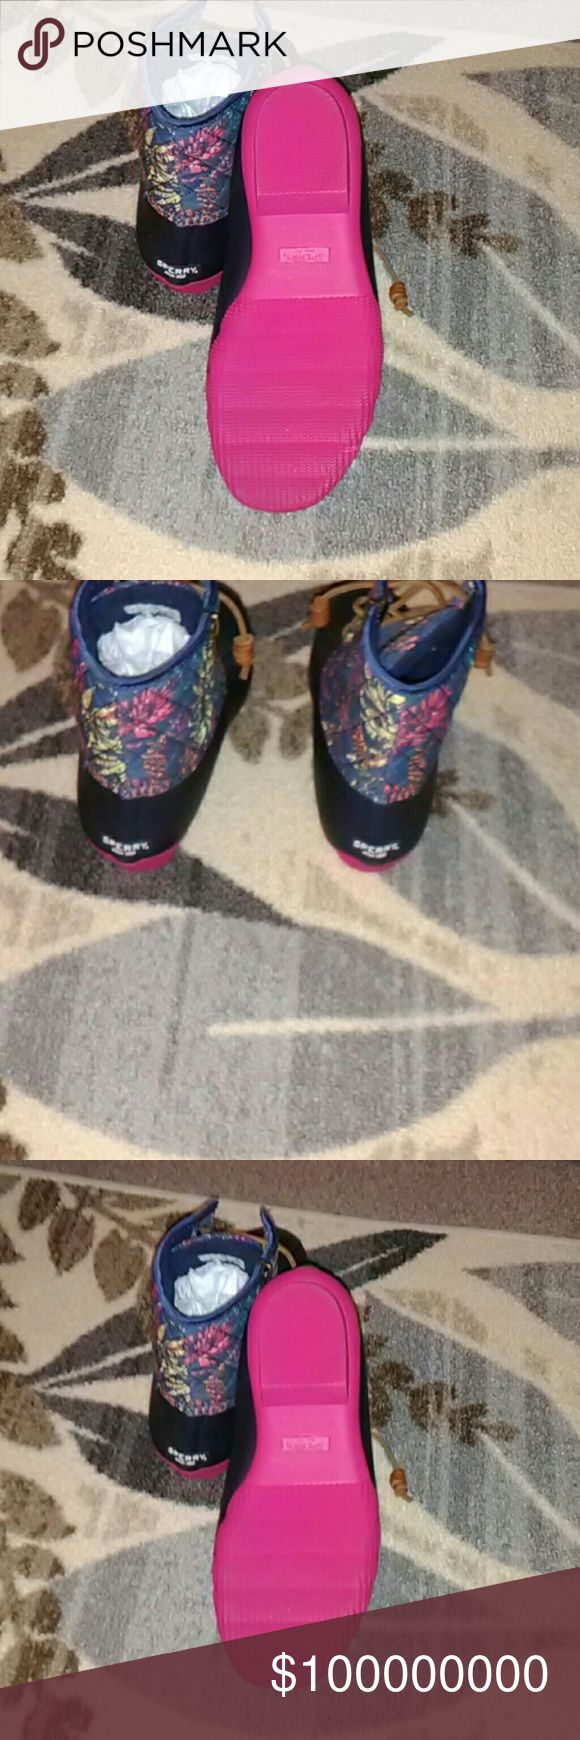 Sperry rain boots Cute boots Not For Sale Sperry Shoes Lace Up Boots